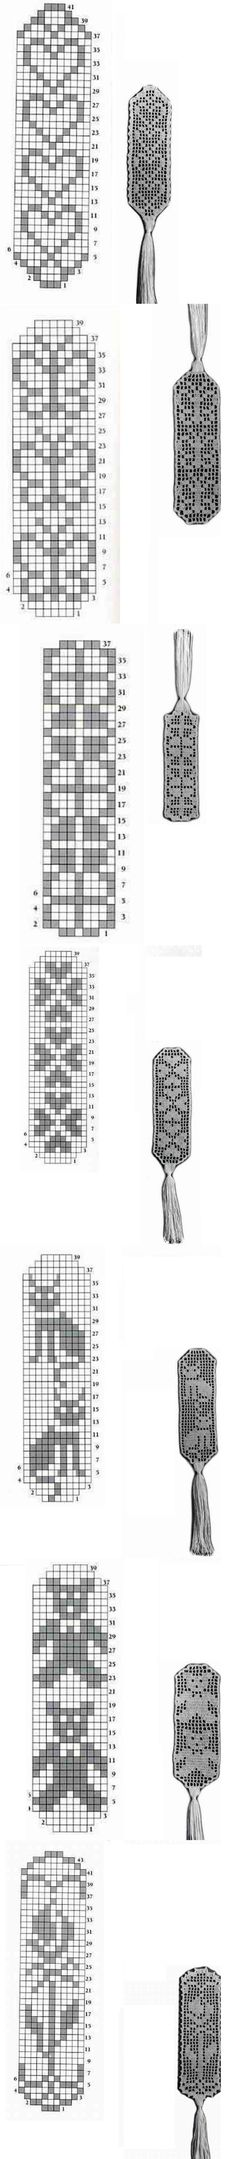 Seven filet crochet bookmarks - charts Crochet Bookmark Pattern, Crochet Bookmarks, Crochet Cross, Thread Crochet, Crochet Motif, Crochet Doilies, Crochet Flowers, Crochet Gifts, Filet Crochet Charts